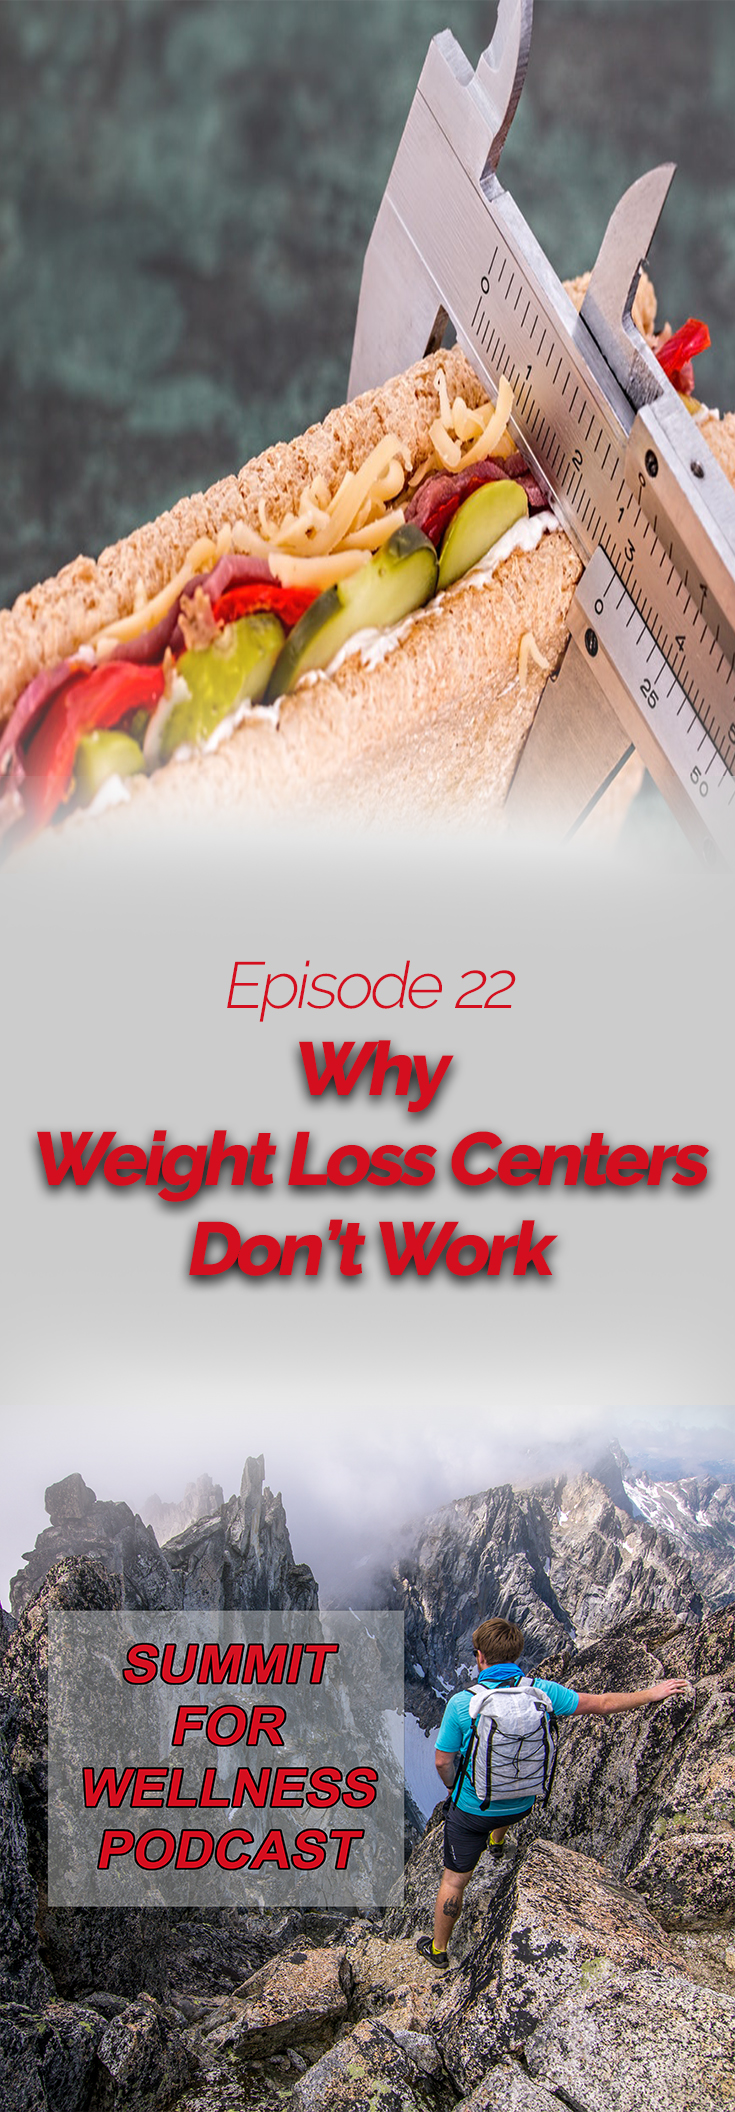 Why Weight Loss Centers Don't Work